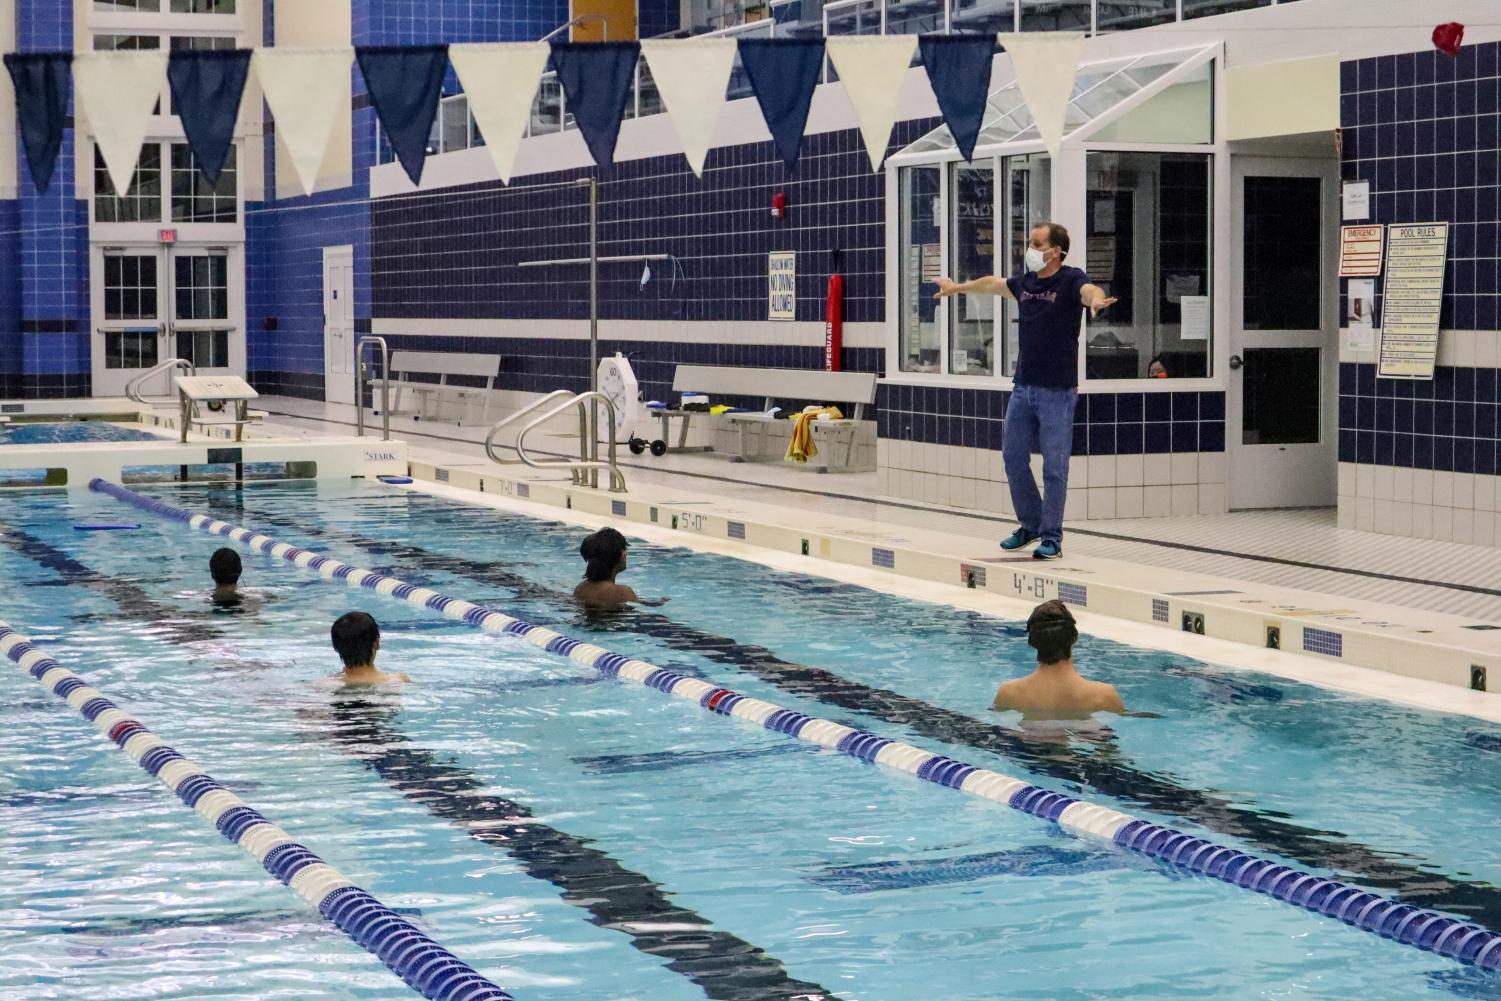 The team was restricted to a maximum of 20 people in the pool at once.